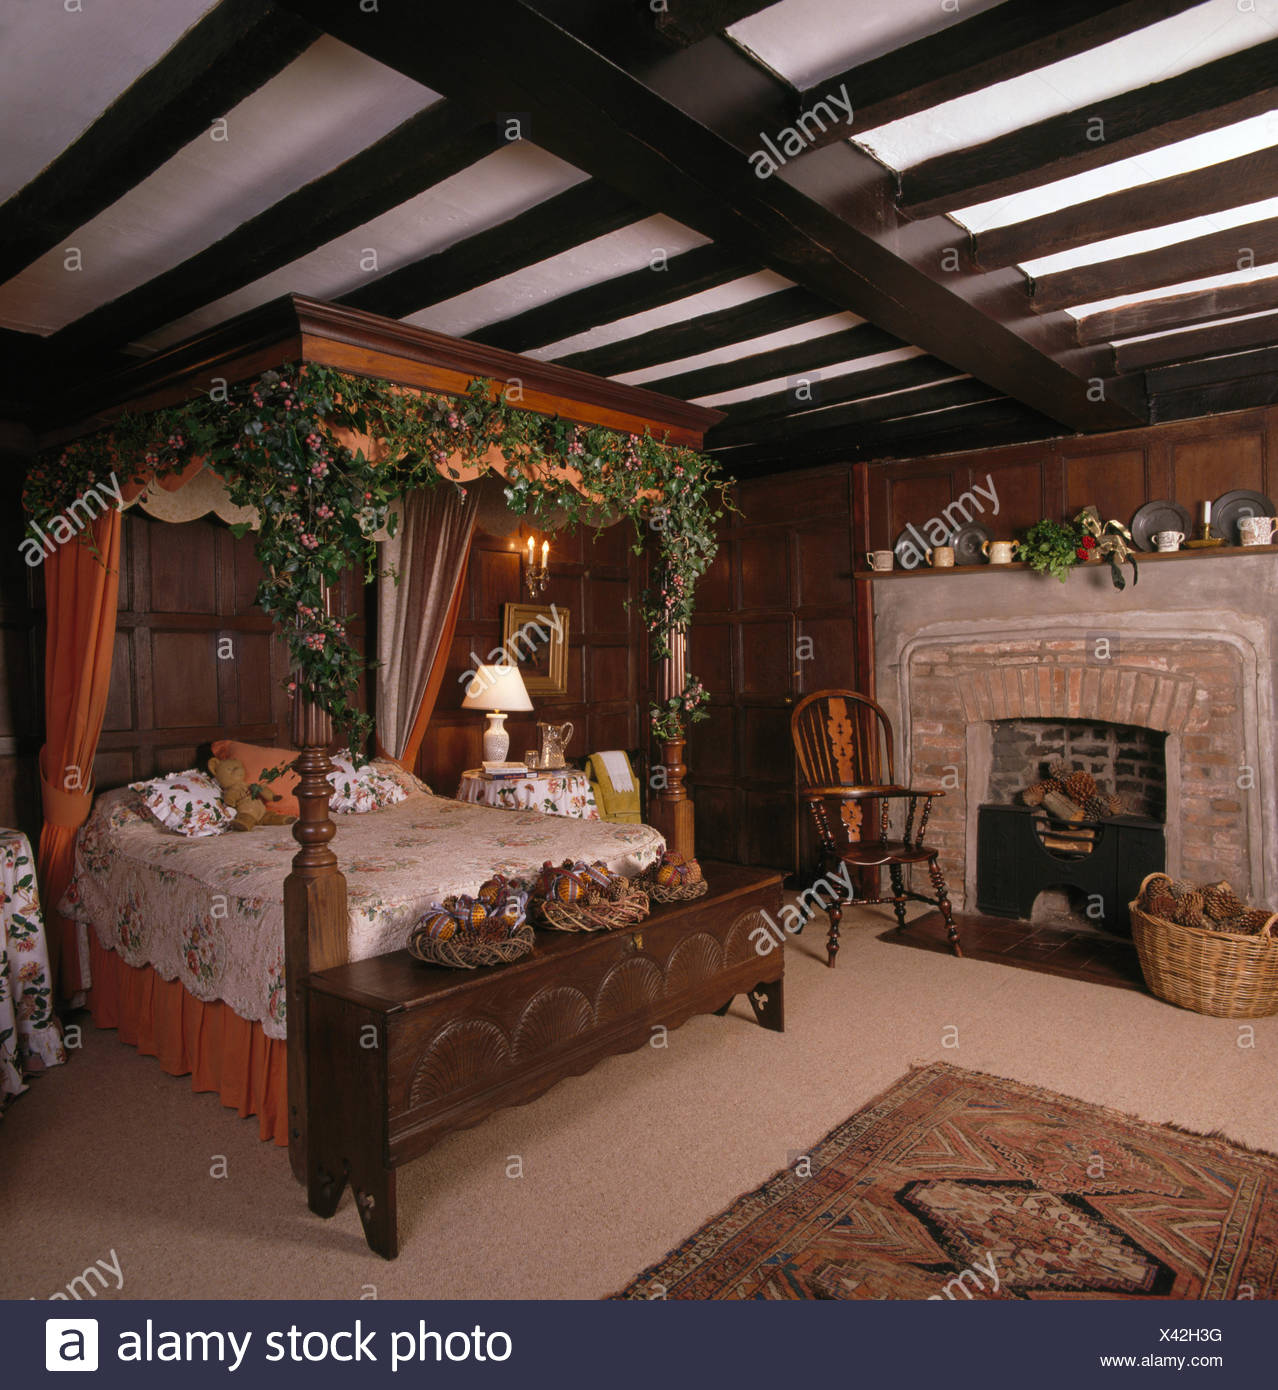 Foliage garland on carved wood four posted bed in beamed country bedroom - Stock Image